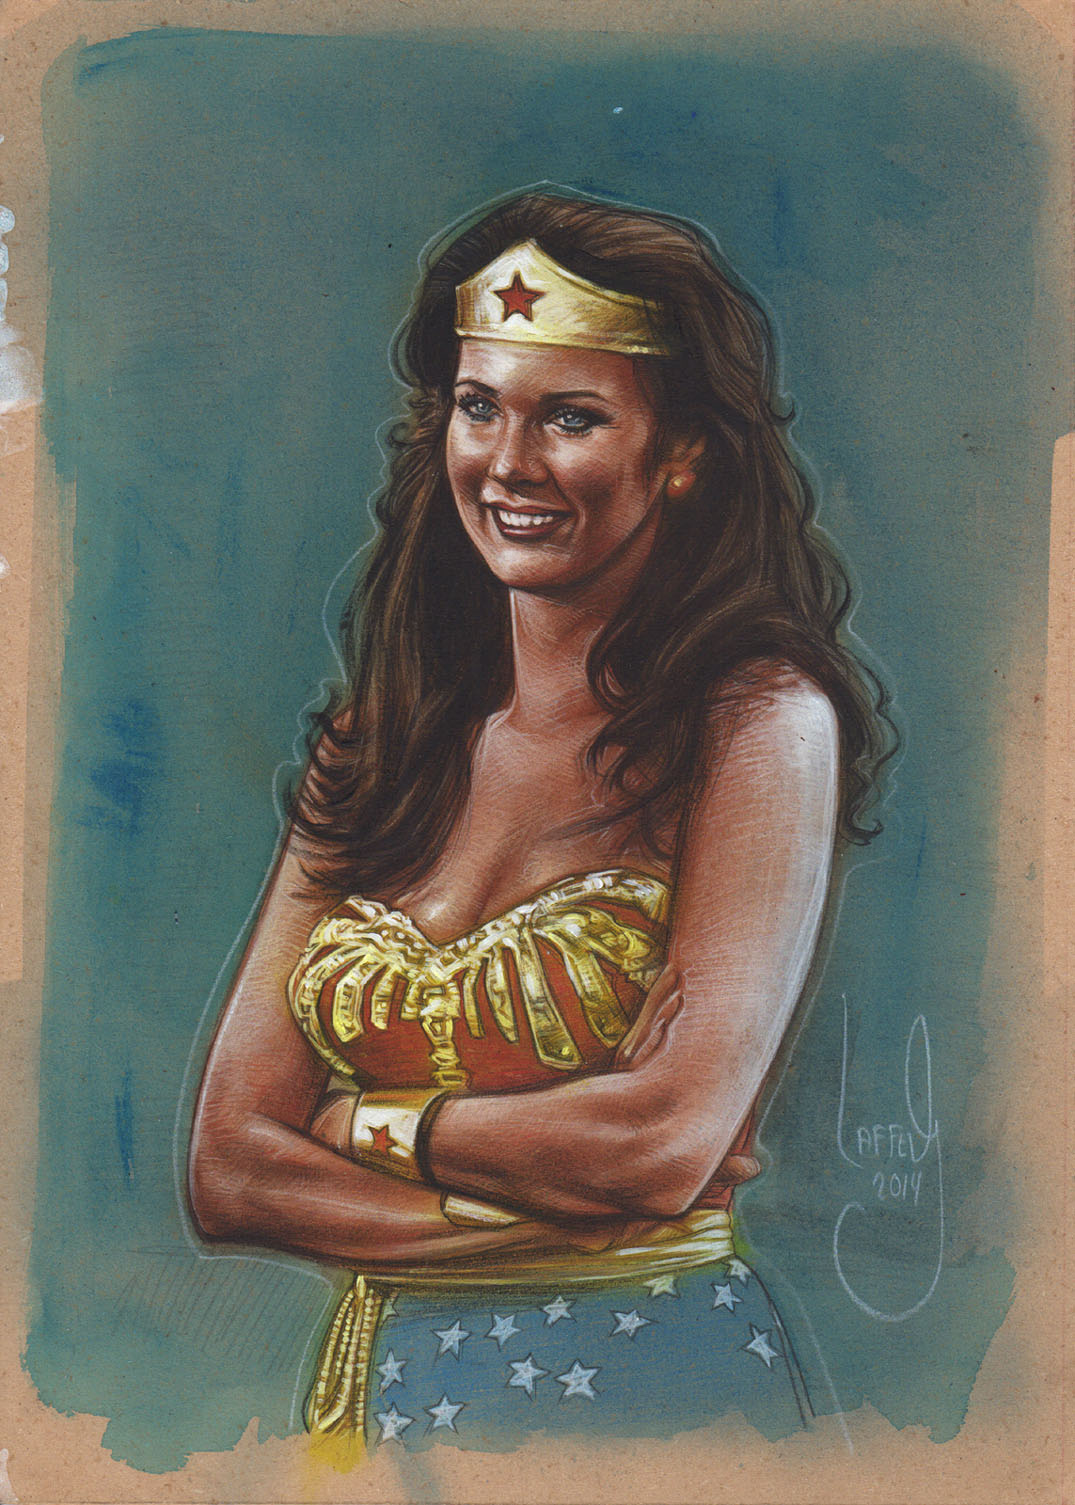 Lynda Carter as Wonder Woman, Artwork is Copyright © 2014 Jeff Lafferty